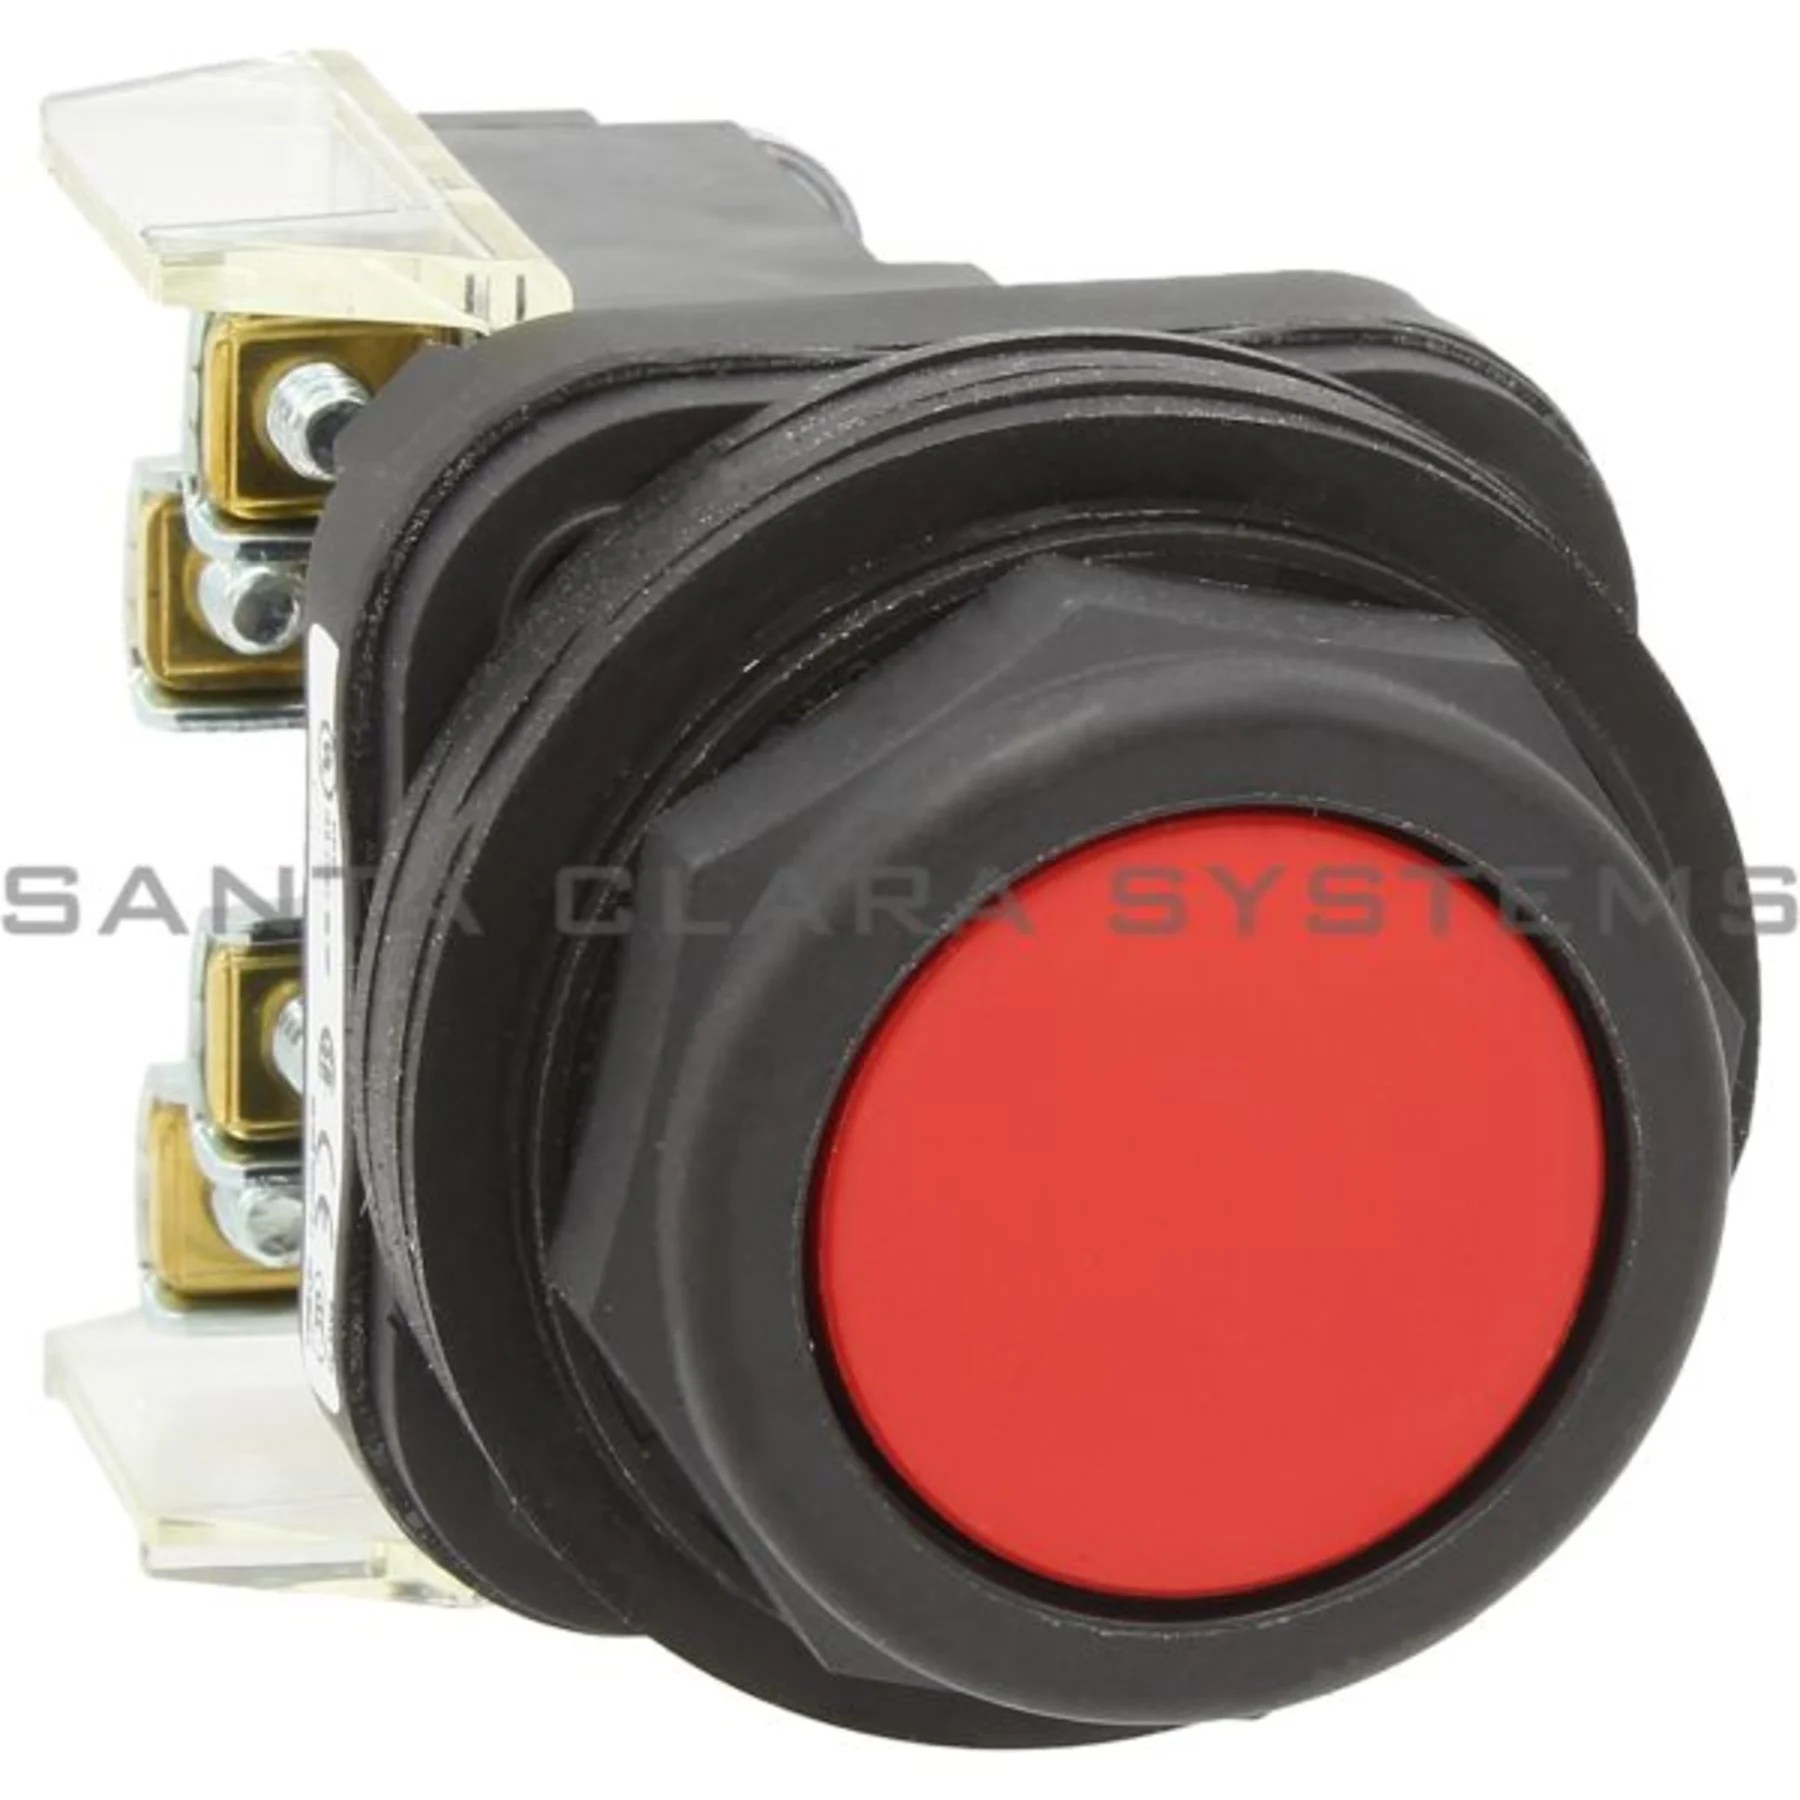 hight resolution of allen bradley 800h ar6a pushbutton product image